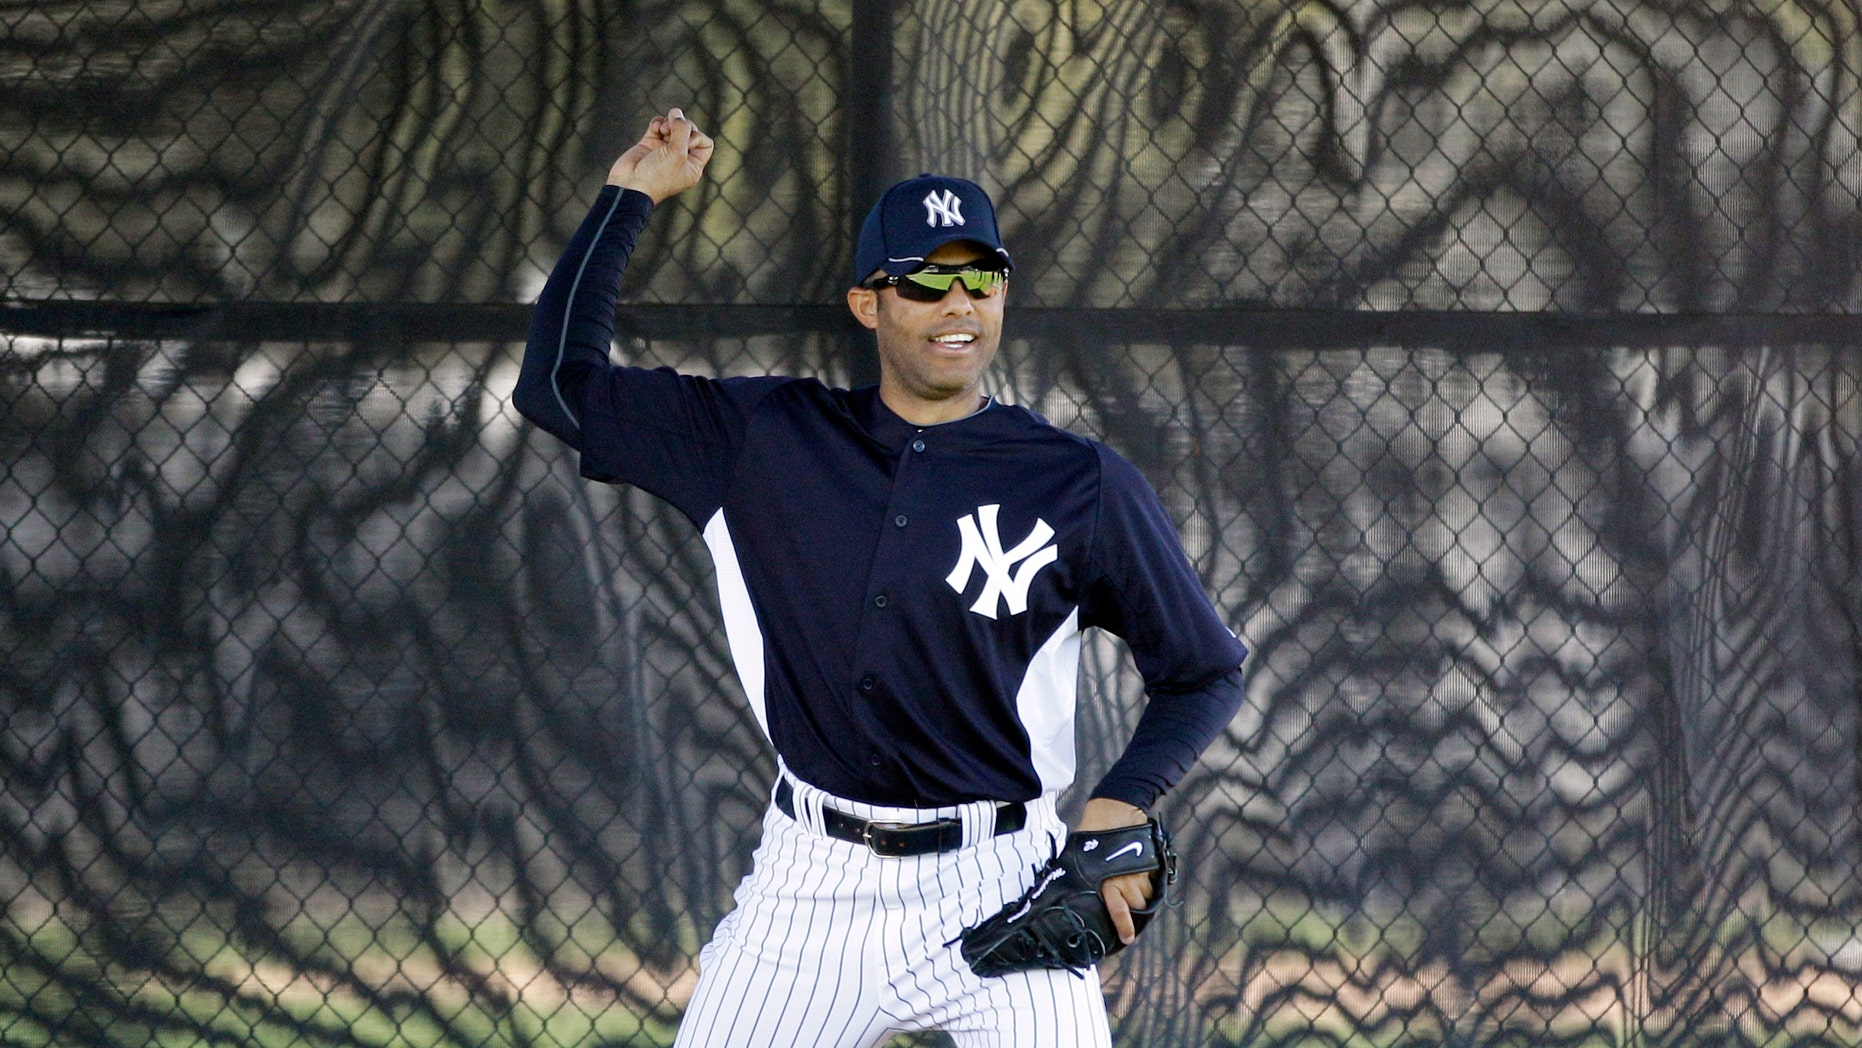 Feb. 20, 2012: New York Yankees' Mariano Rivera practices at baseball spring training in Tampa, Fla. (AP)